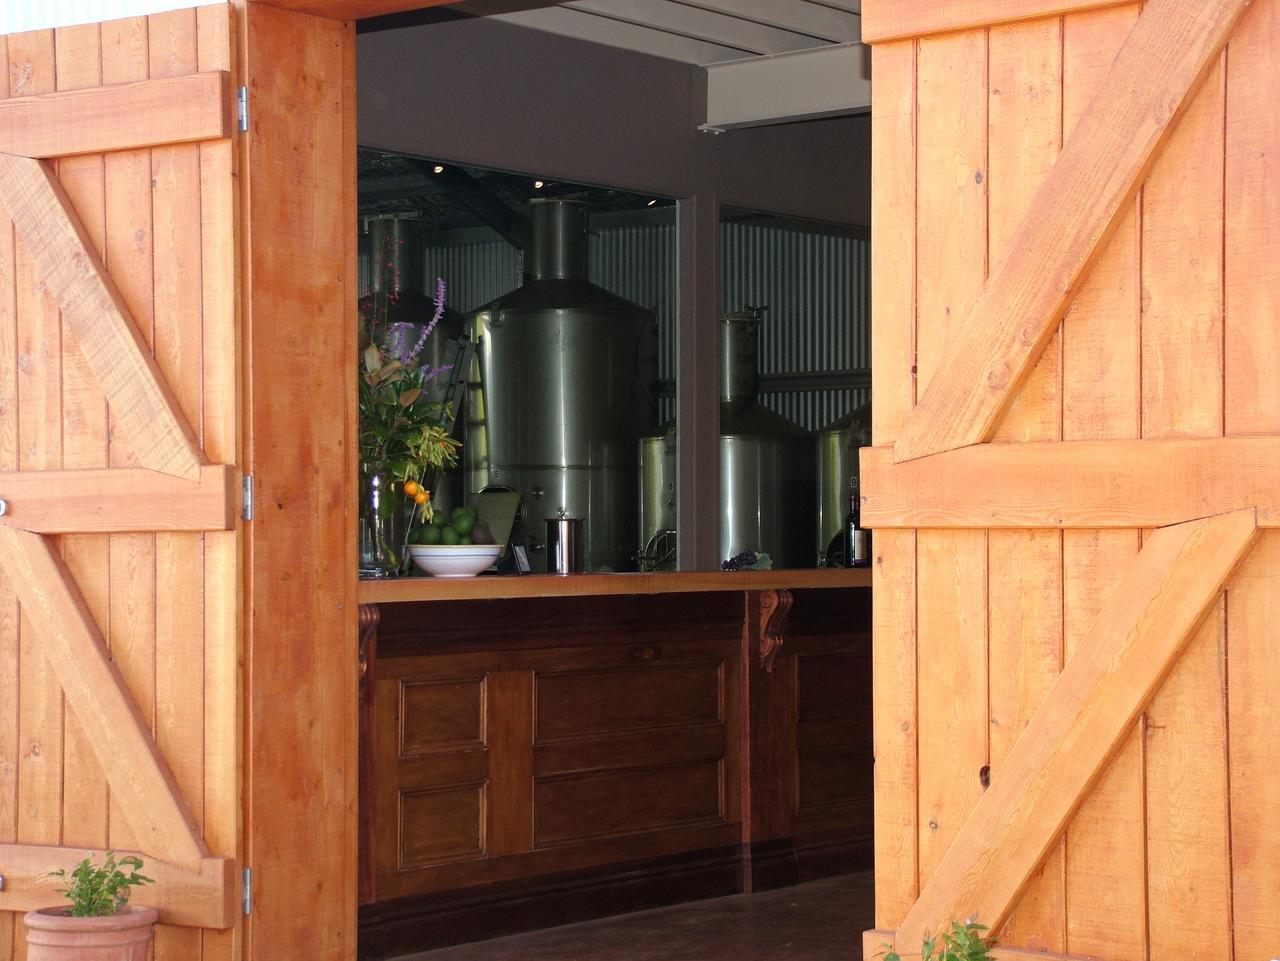 The cellar door at the Witches Falls Winery in the Mt Tamborine wine region.